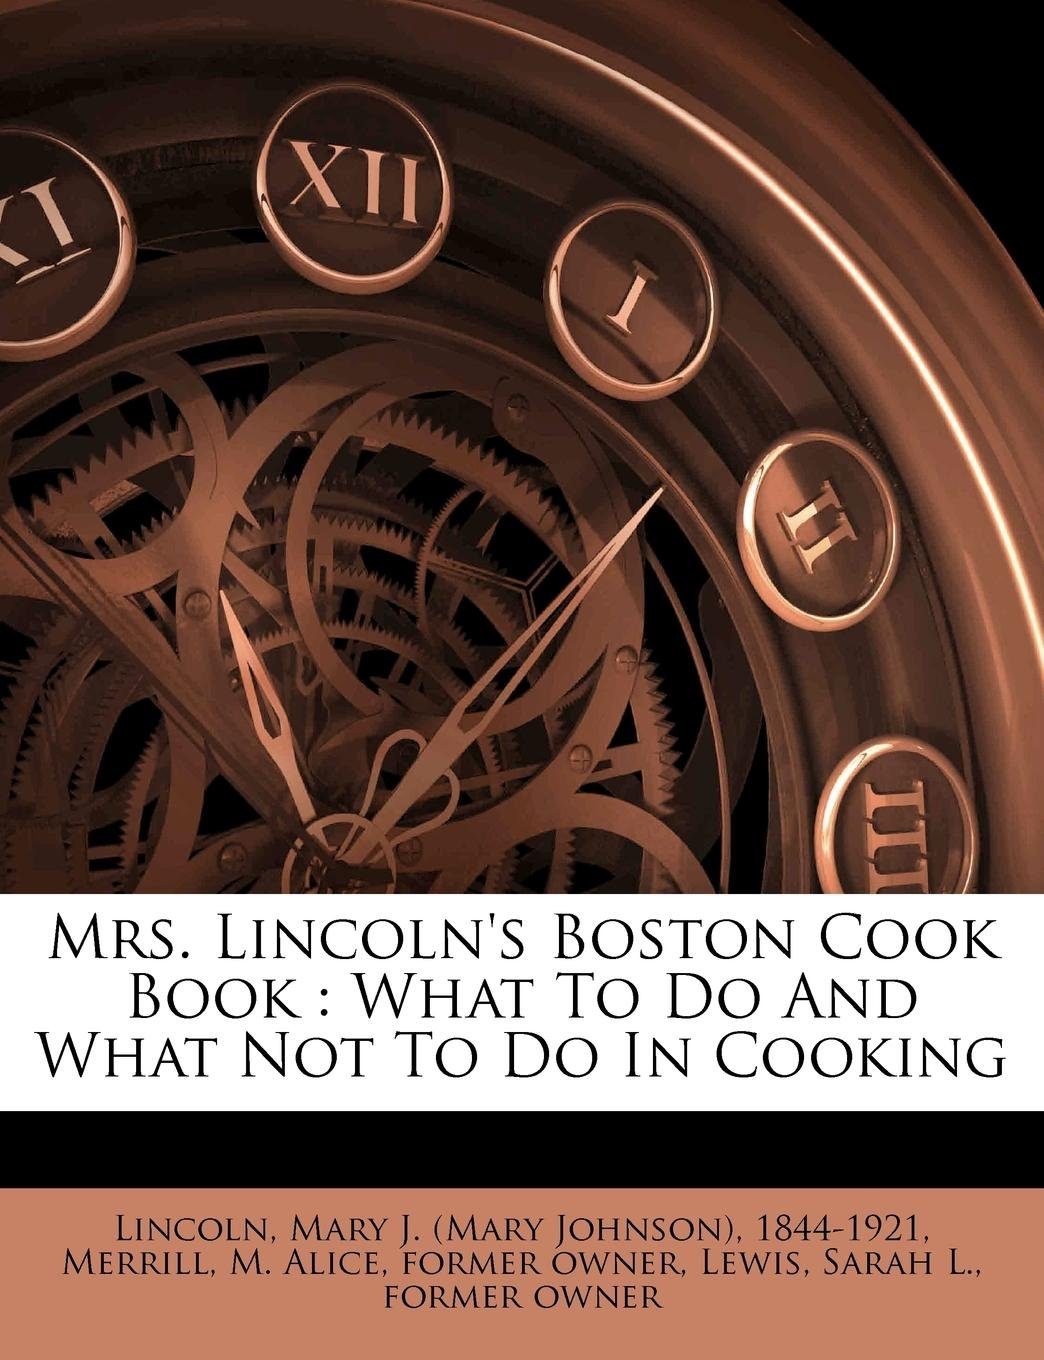 Mrs. Lincoln's Boston Cook Book: What To Do And What Not To Do In Cooking PDF